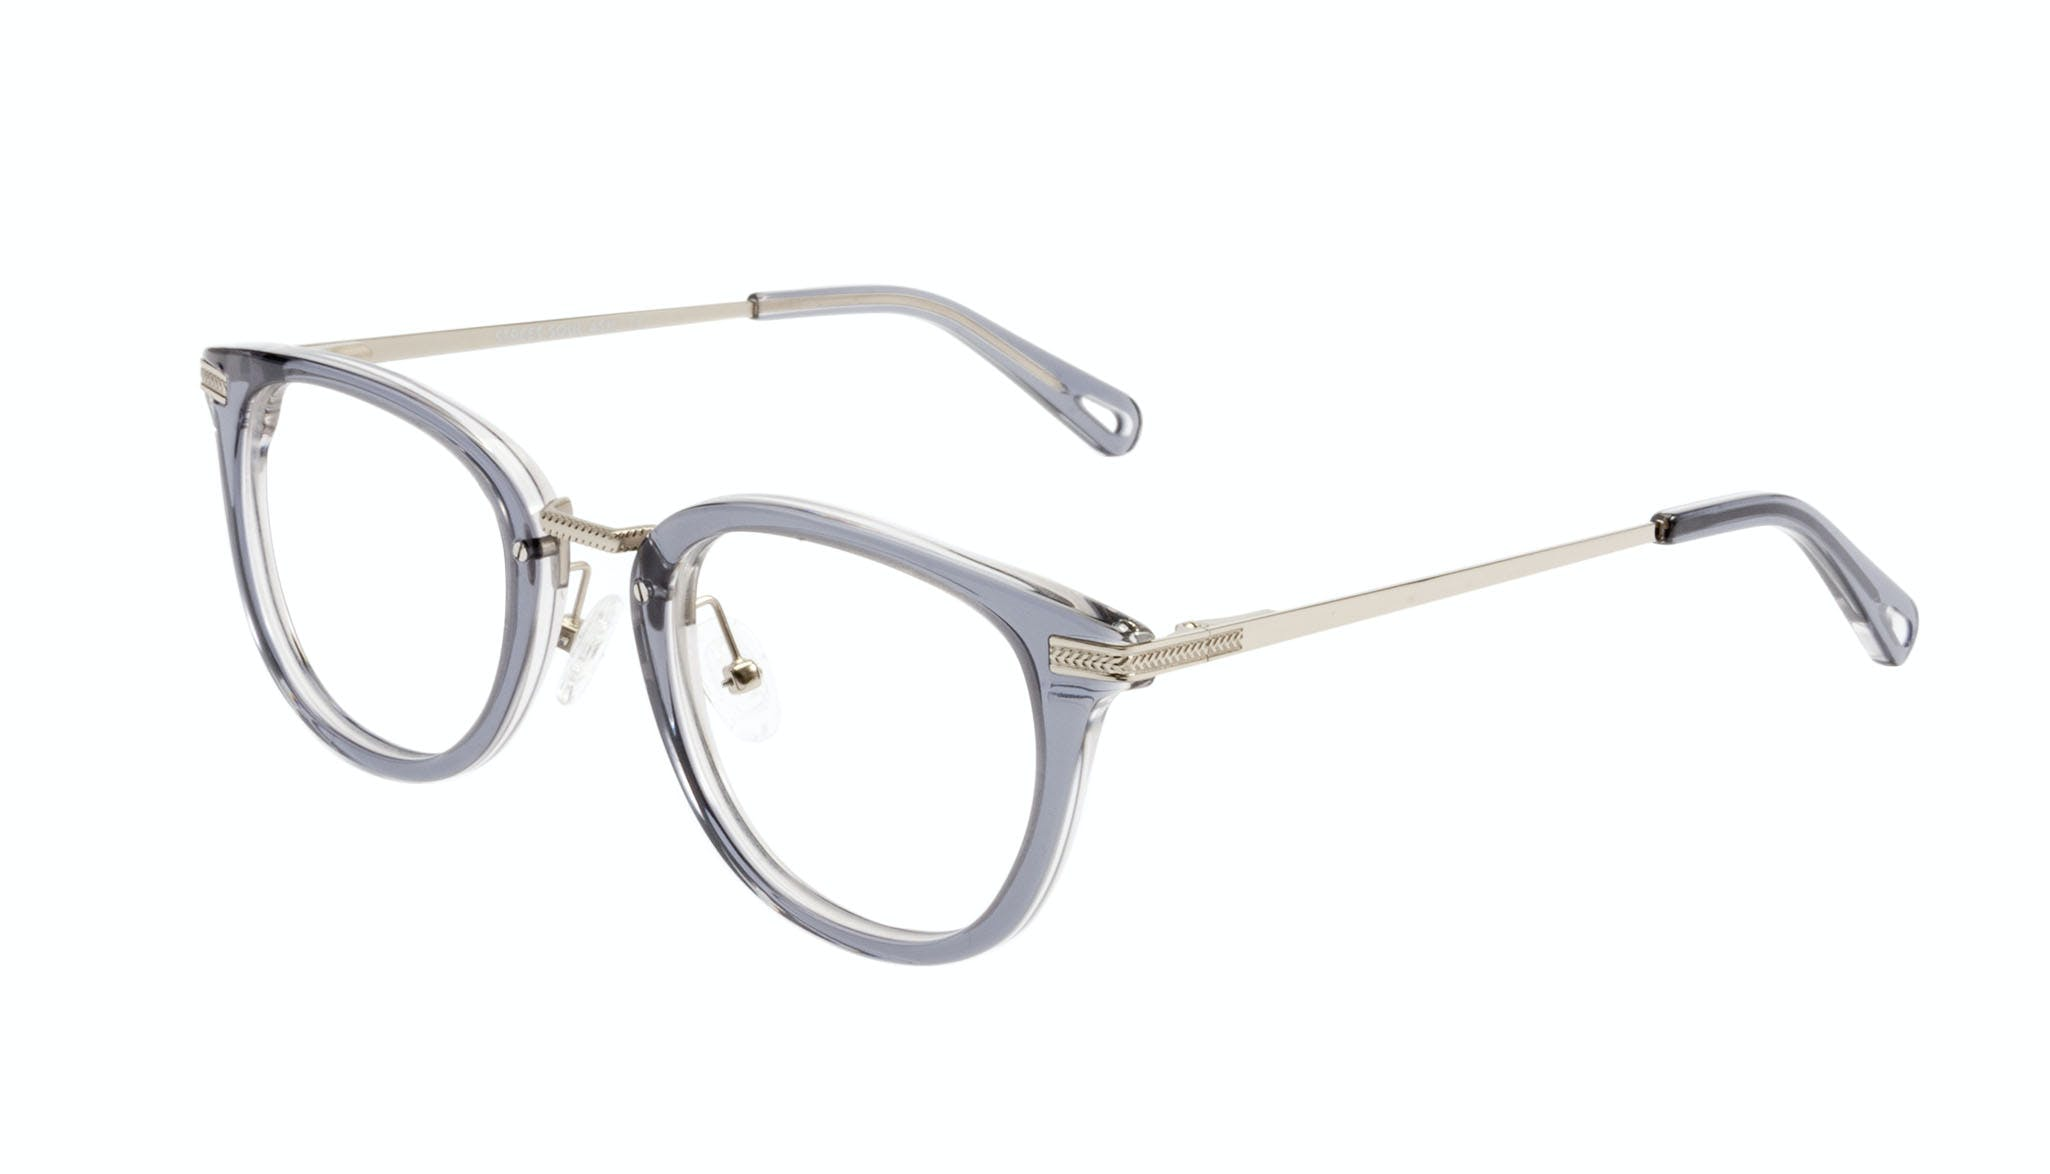 Affordable Fashion Glasses Rectangle Square Eyeglasses Men Street Soul Ash Tilt